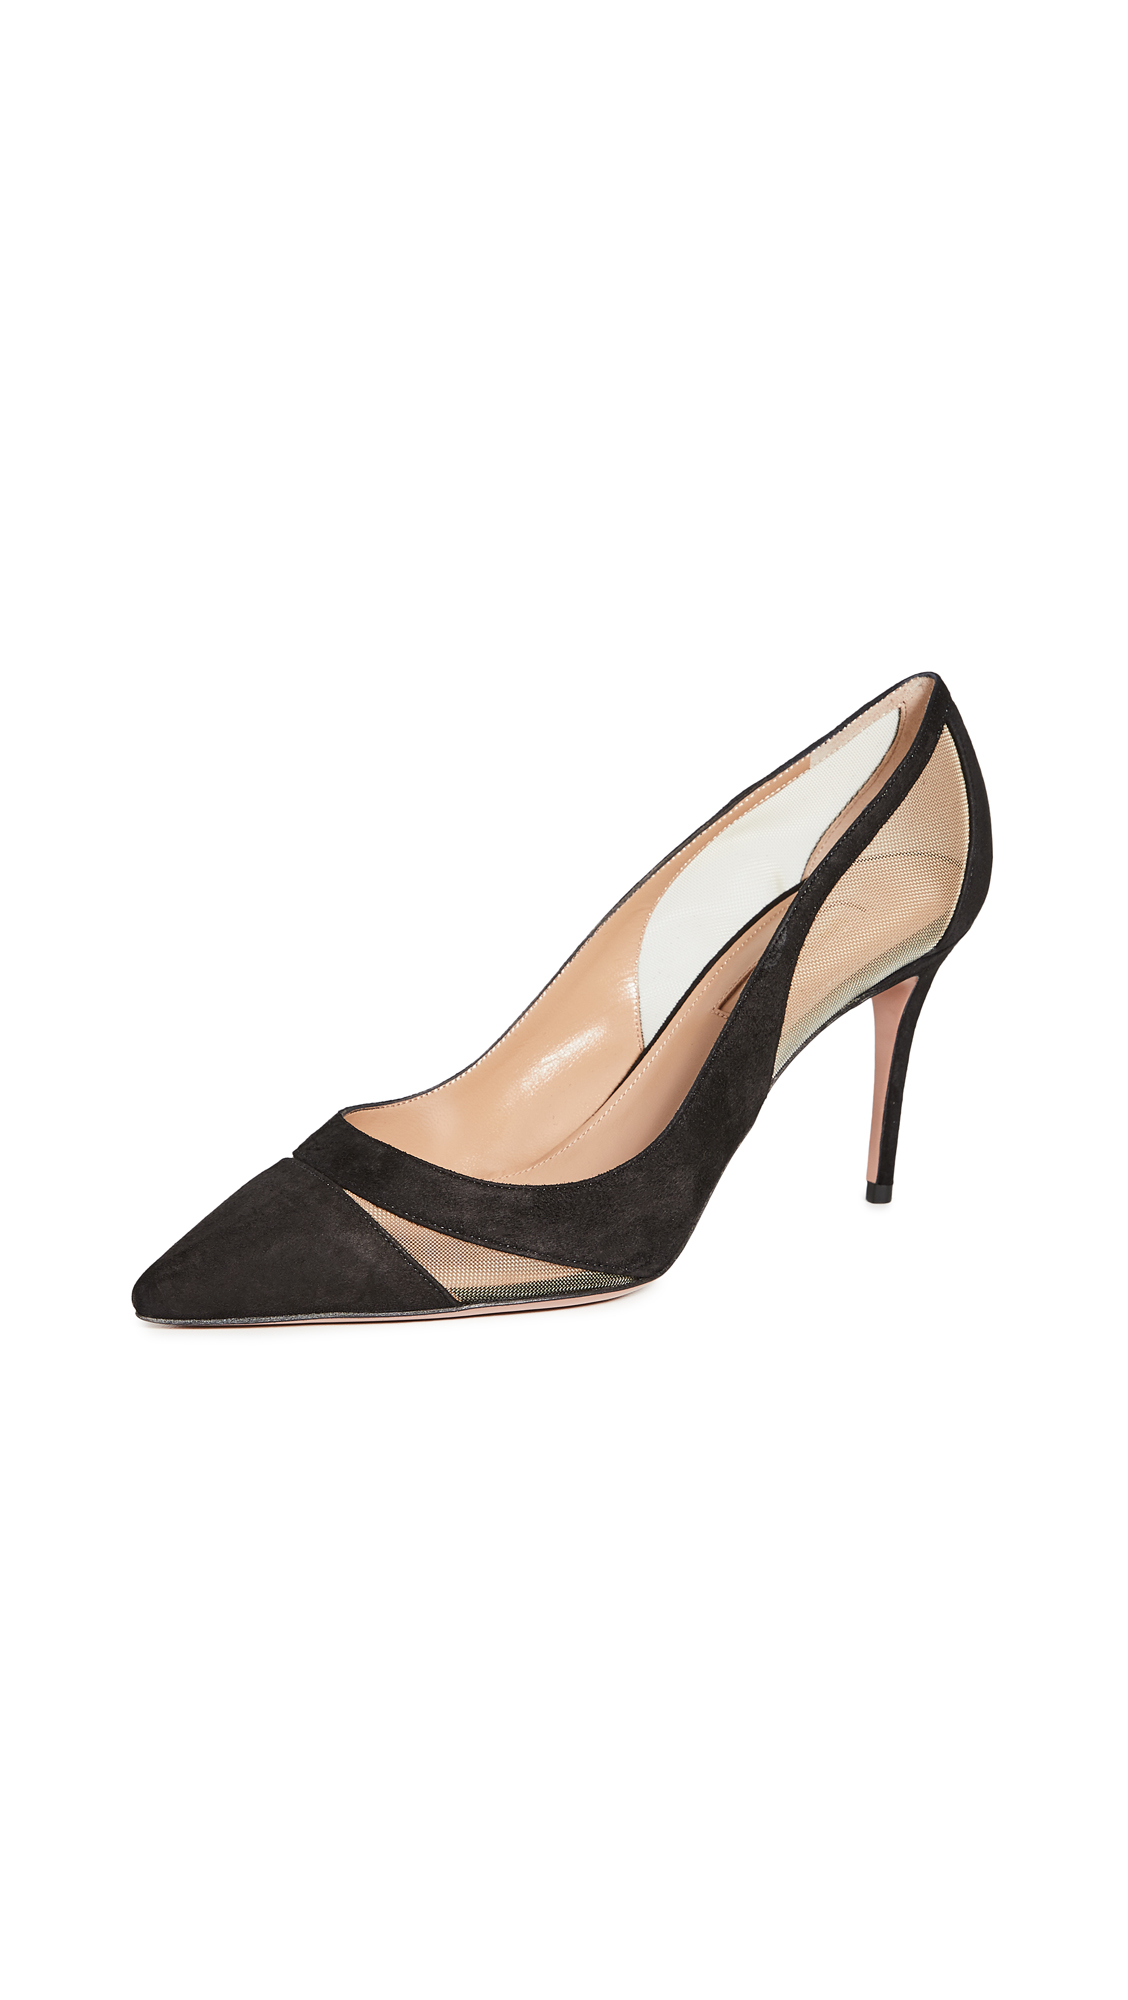 Buy Aquazzura 85mm Savoy Pumps online, shop Aquazzura